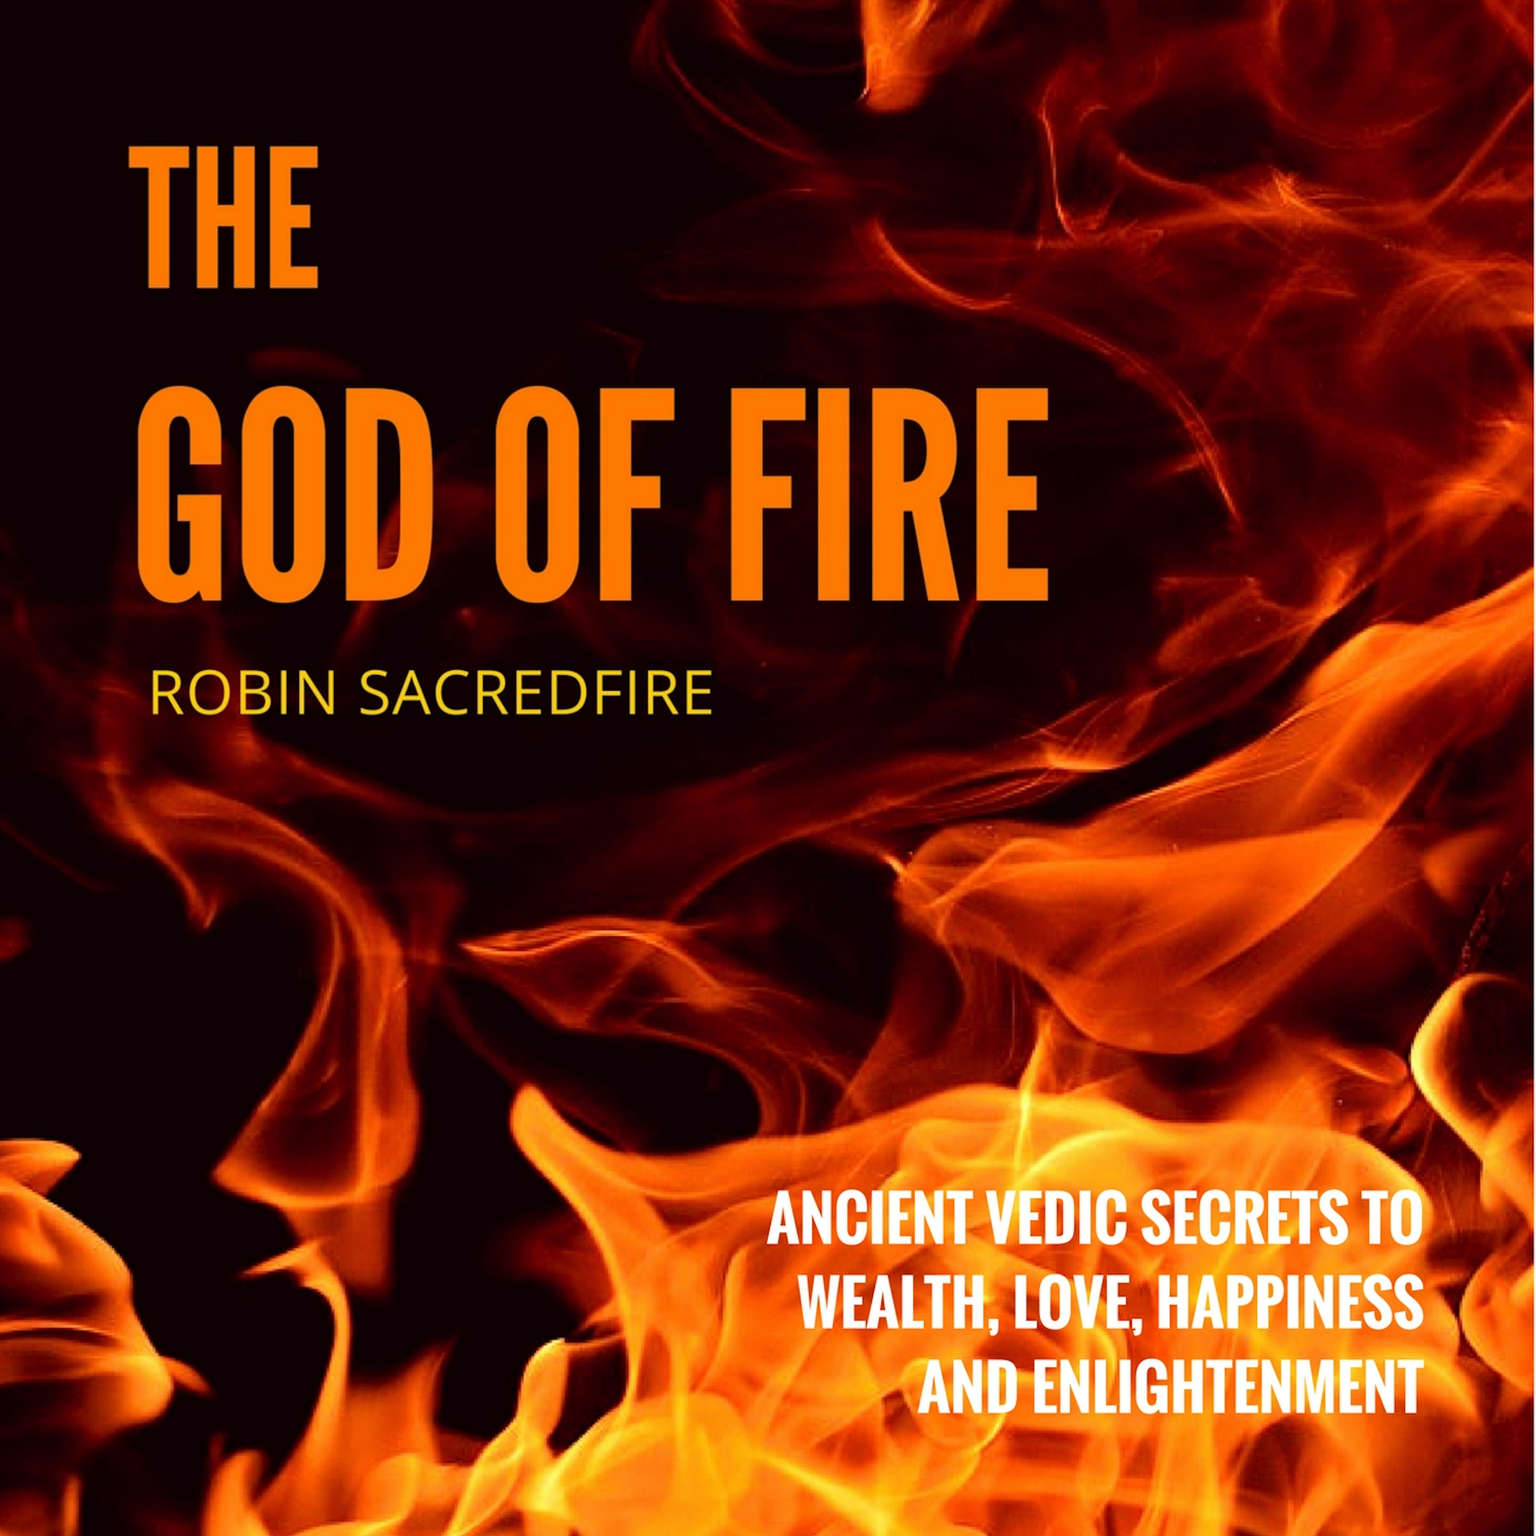 The God of Fire: Ancient Vedic Secrets to Wealth, Love, Happiness and Enlightenment Audiobook, by Robin Sacredfire